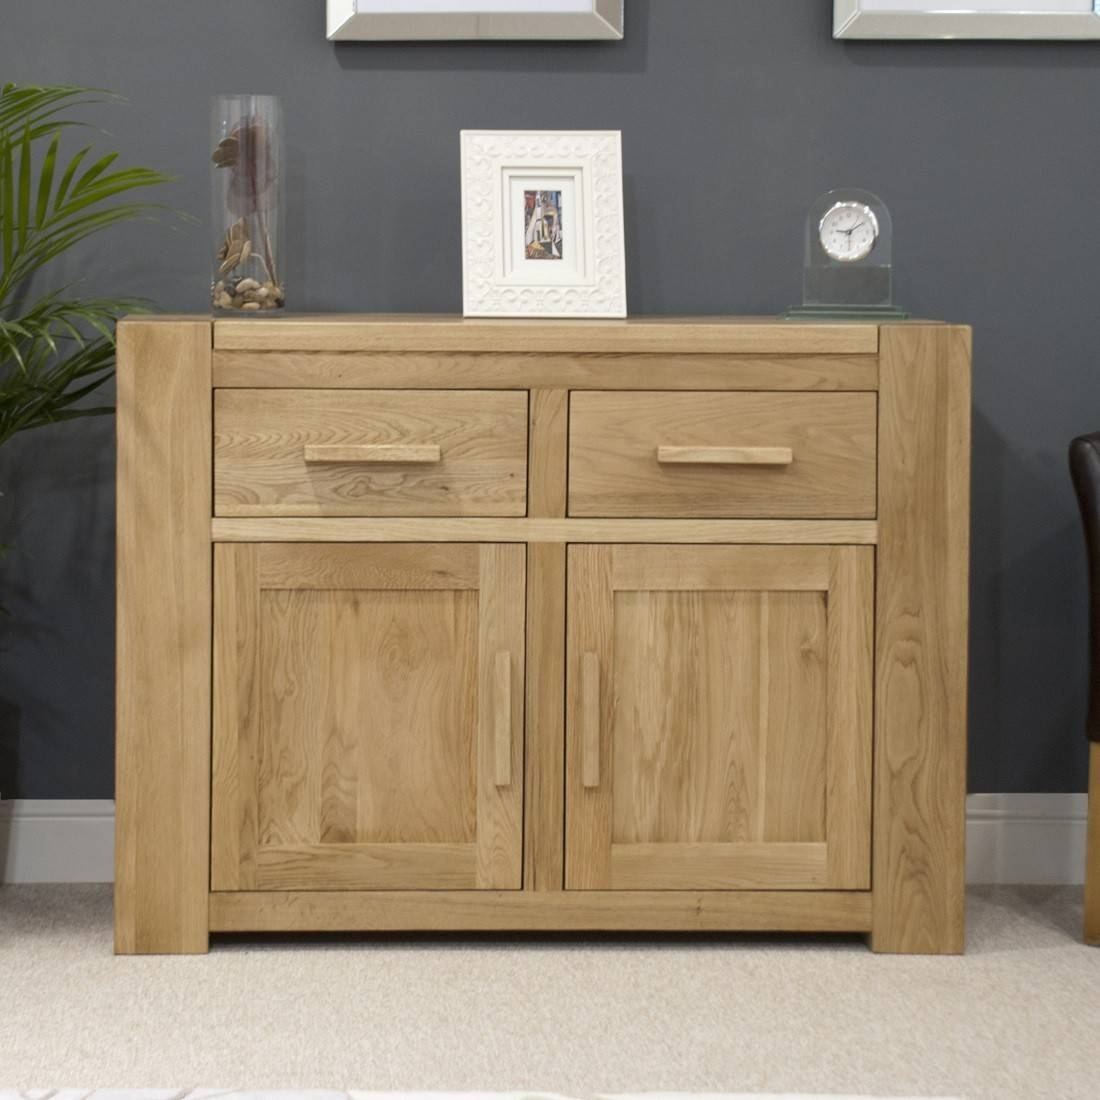 Solid Oak Furniture | Oak Furniture Uk throughout Light Oak Sideboards (Image 22 of 30)